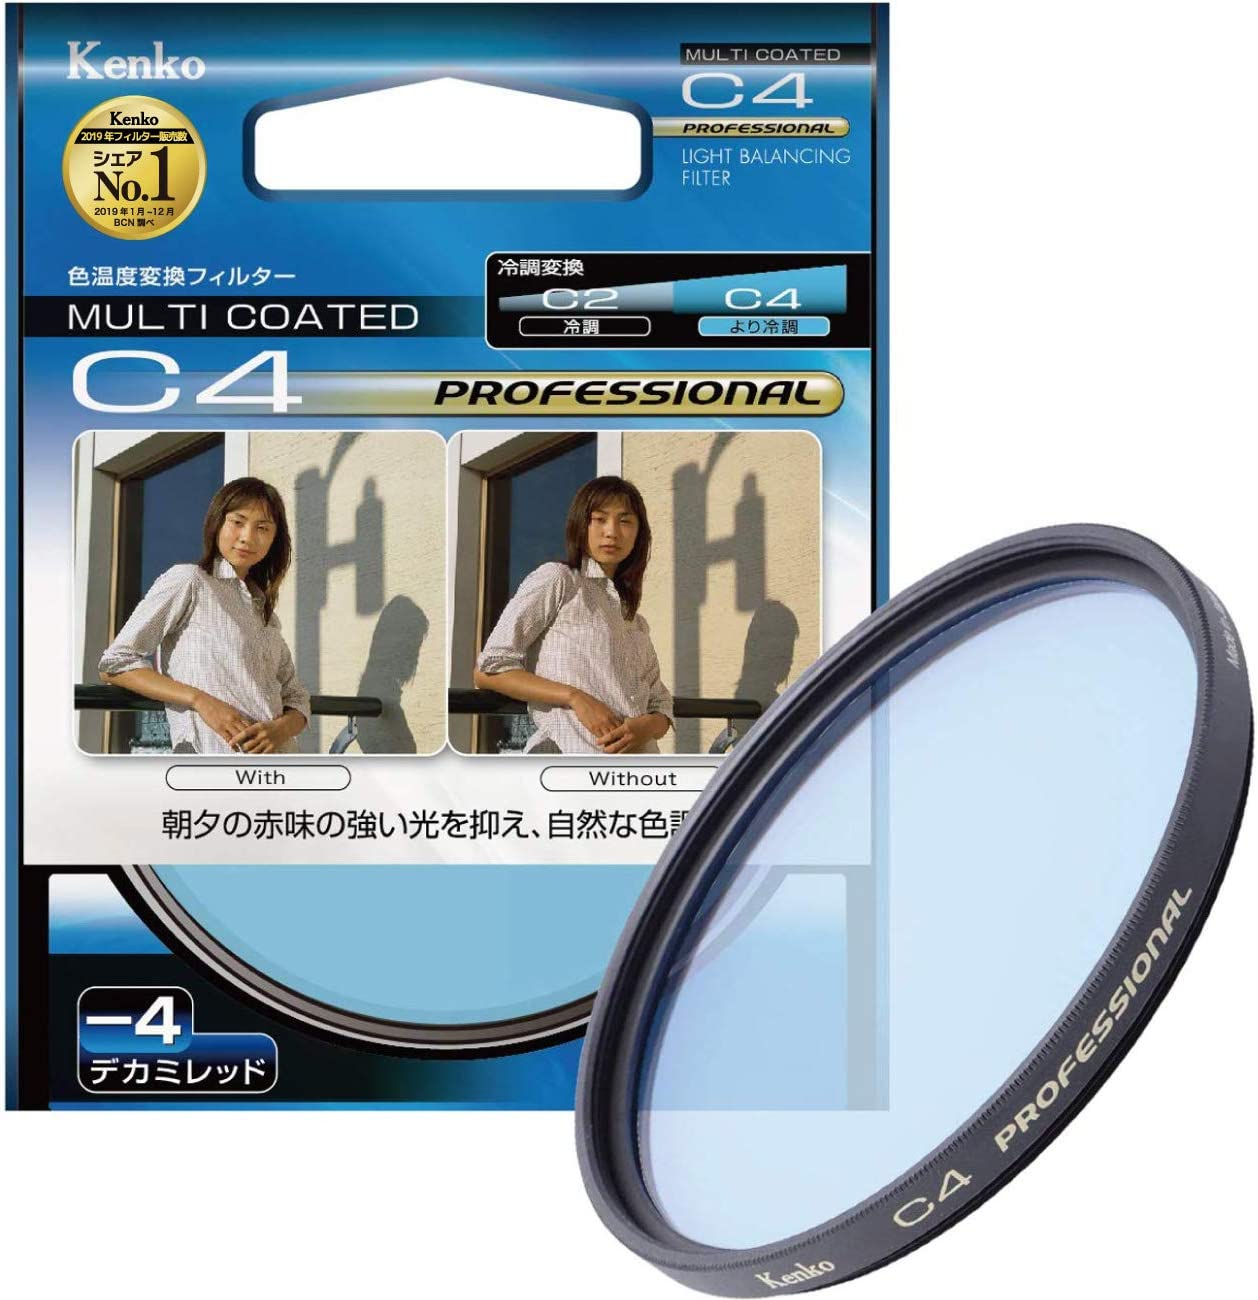 Kenko 77mm OFFicial C4 Limited Special Price Professional Lens Filters Multi-Coated Camera